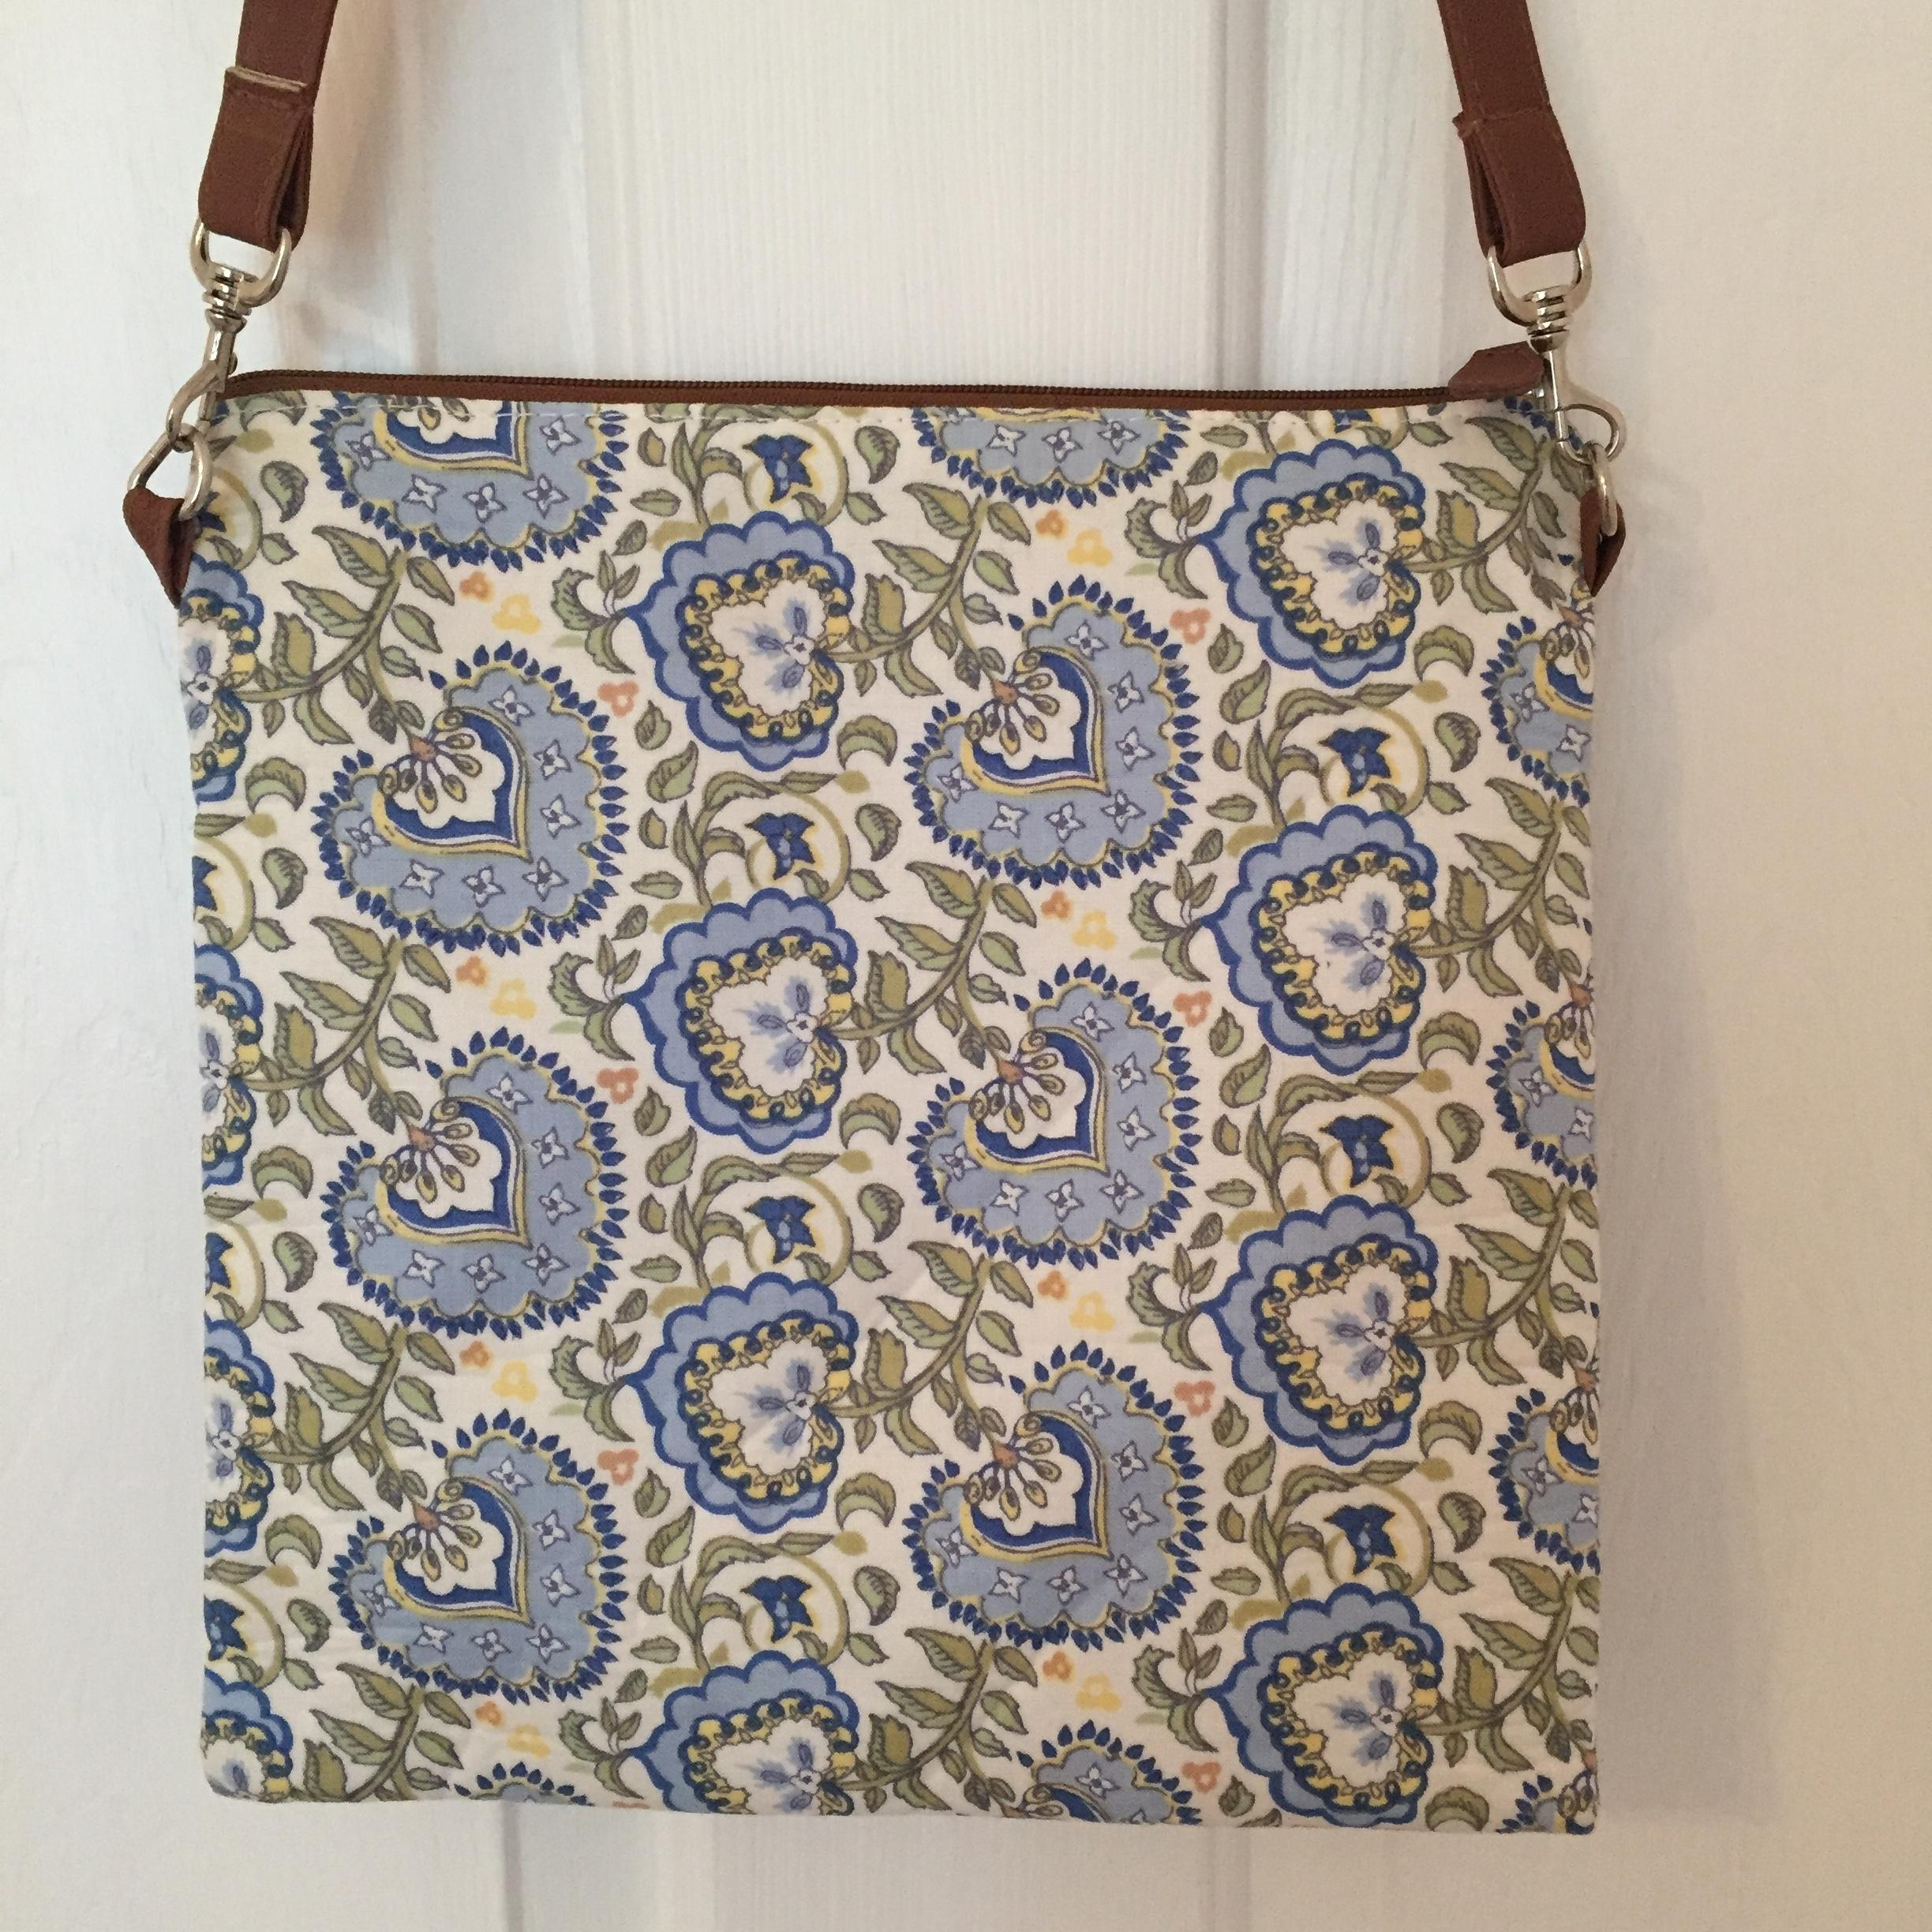 Longaberger Blue/Green/White Floral With Tan Detail Cross Body Bag | Cross Body Bags On Sale